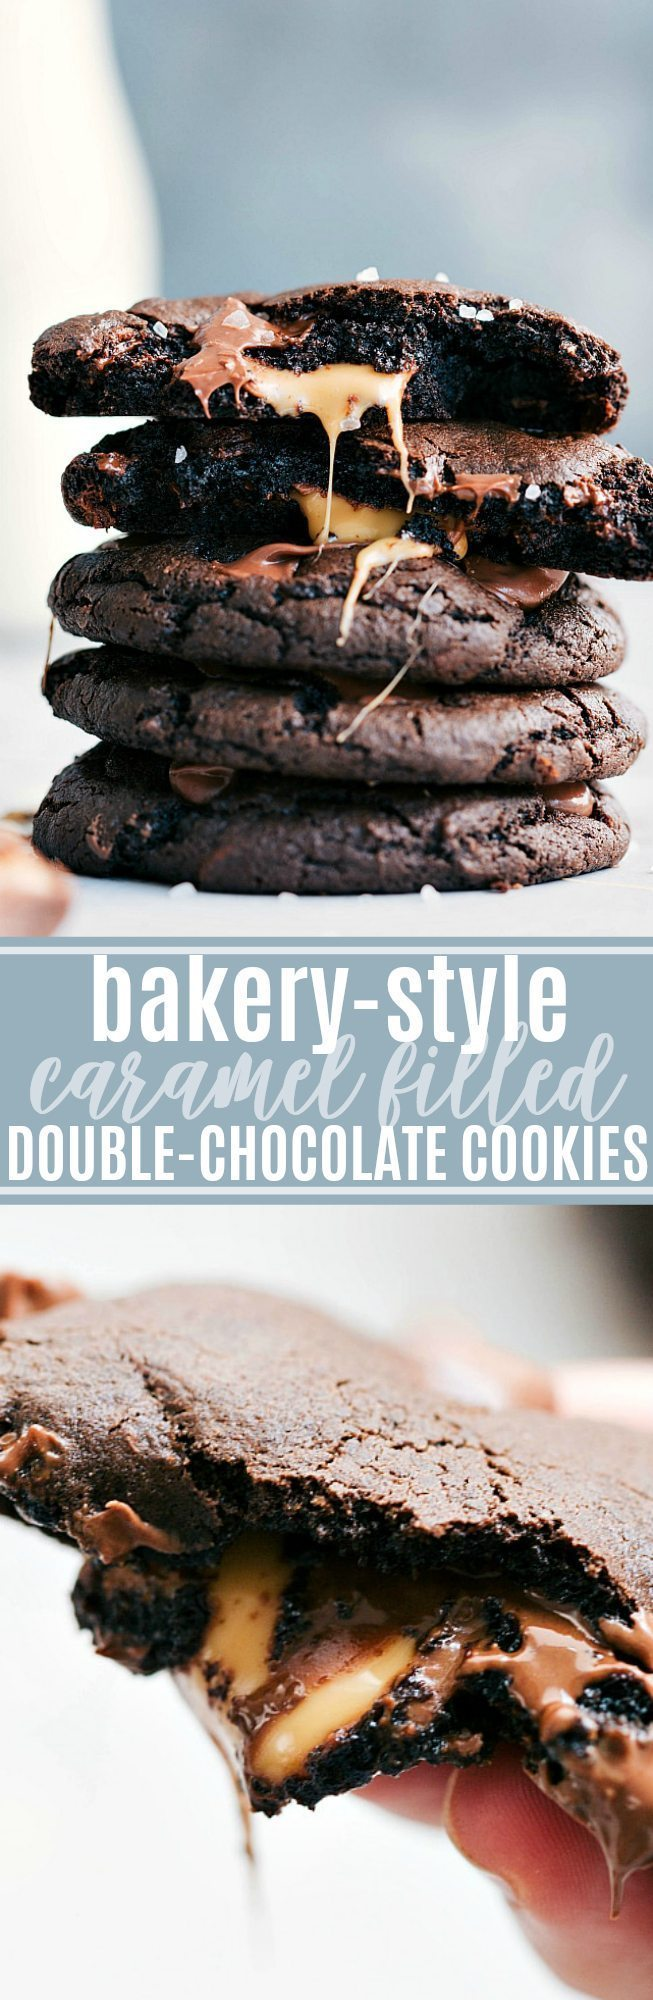 AWARD WINNING caramel filled double-chocolate cookies!! via chelseasmessyapron.com | #cookie #holiday #baking #chocolate #dessert #desserts #caramel #easy #quick #familyfriendly #christmas #cookies #bake #baked #butter #eggs